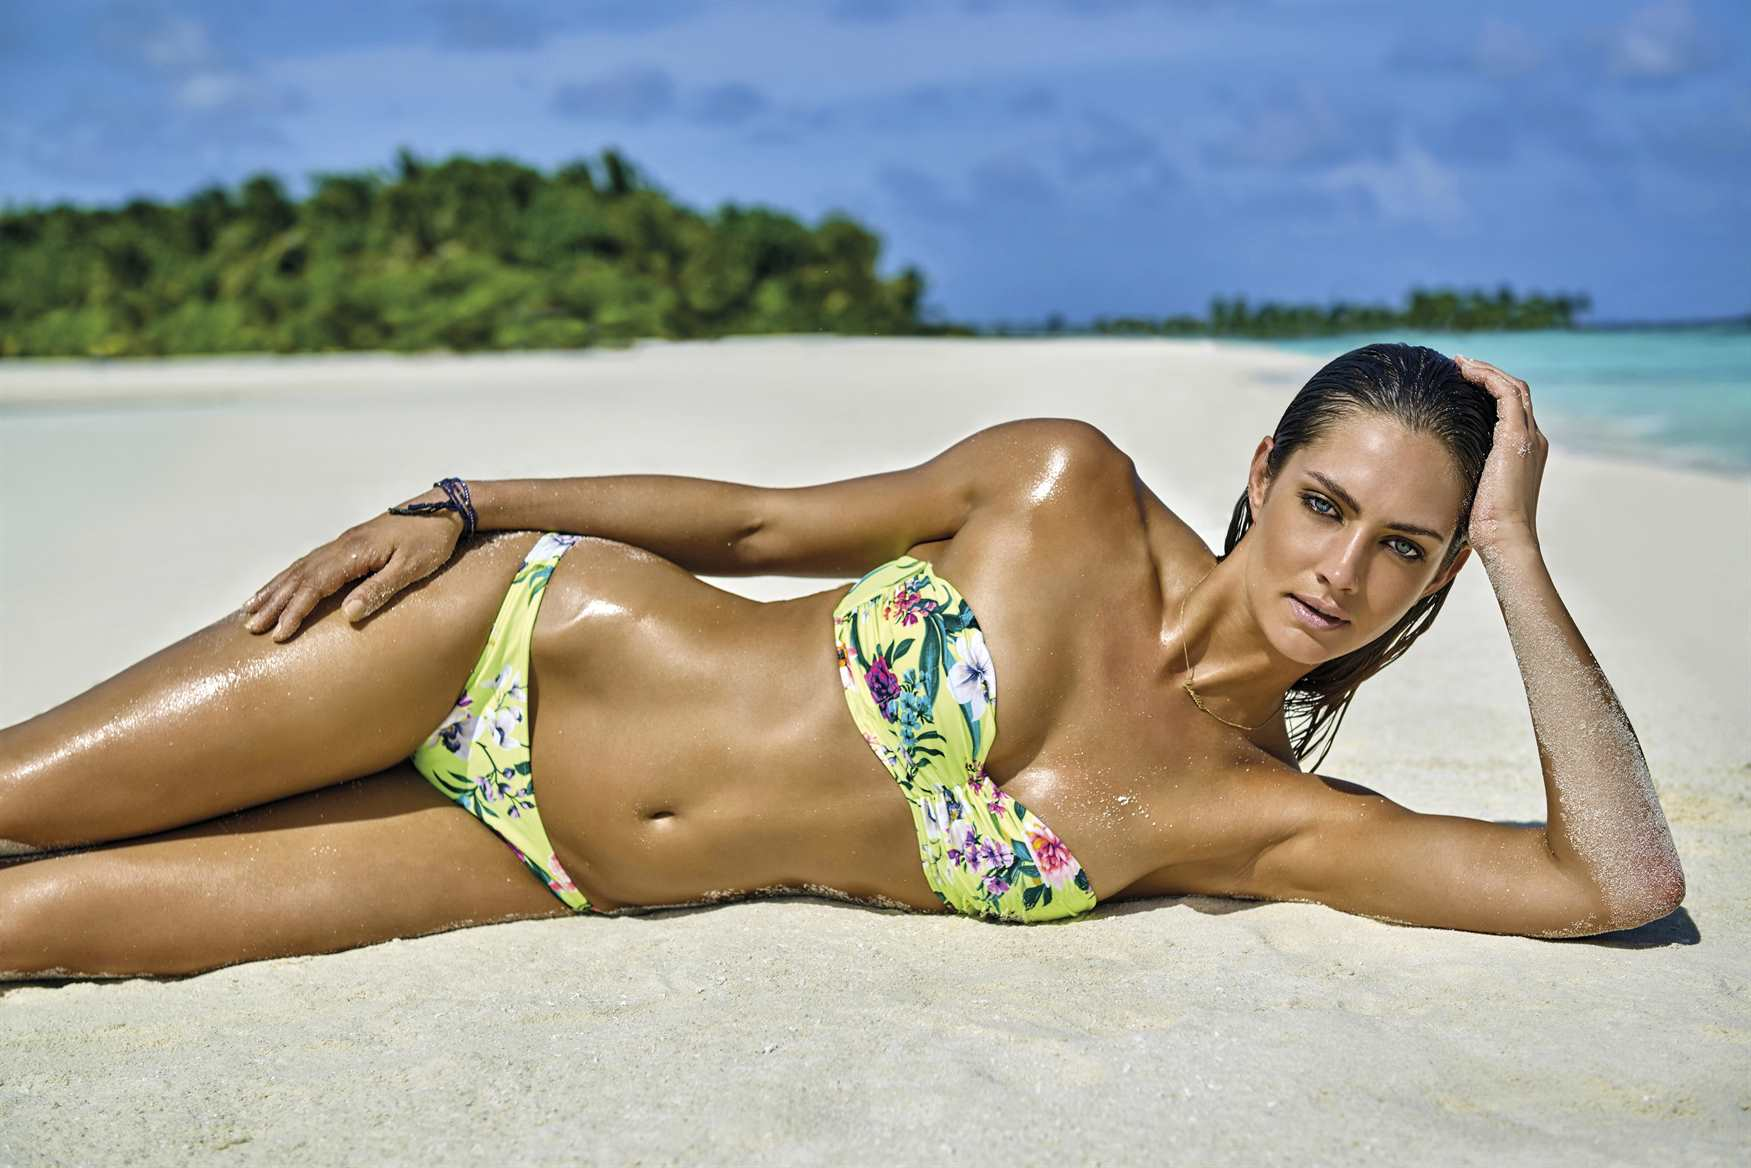 Candice Boucher Hot Bikini Wallpapers - Candice Boucher Hot Bikini Wallpapers